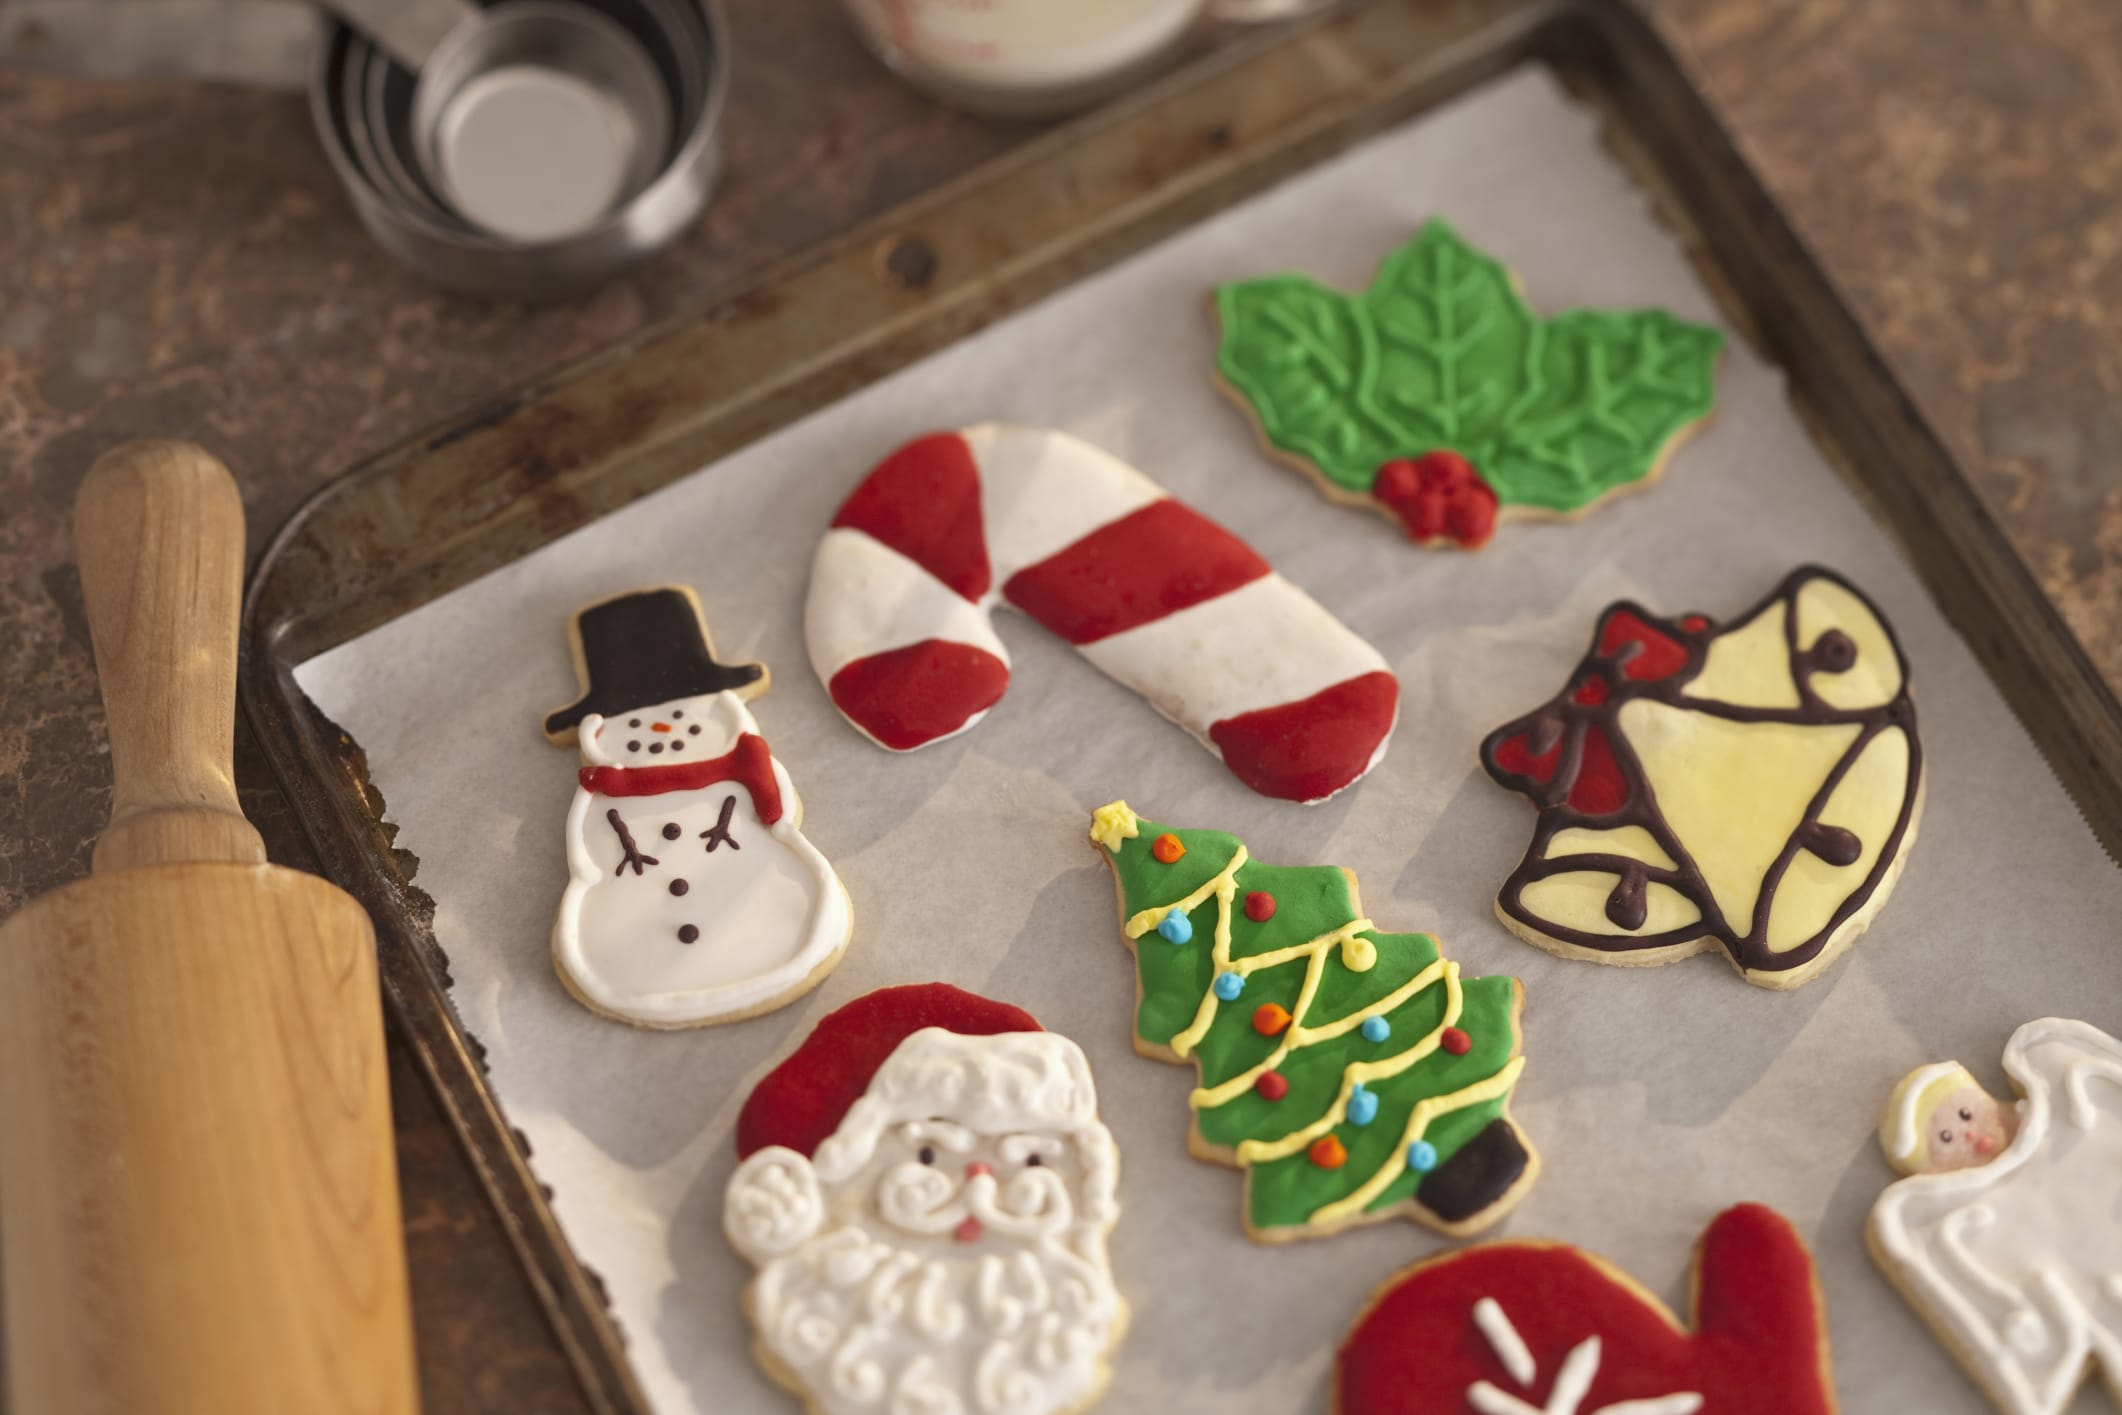 Awesome Cucina Natale 2014 Pictures - Ideas & Design 2017 ...